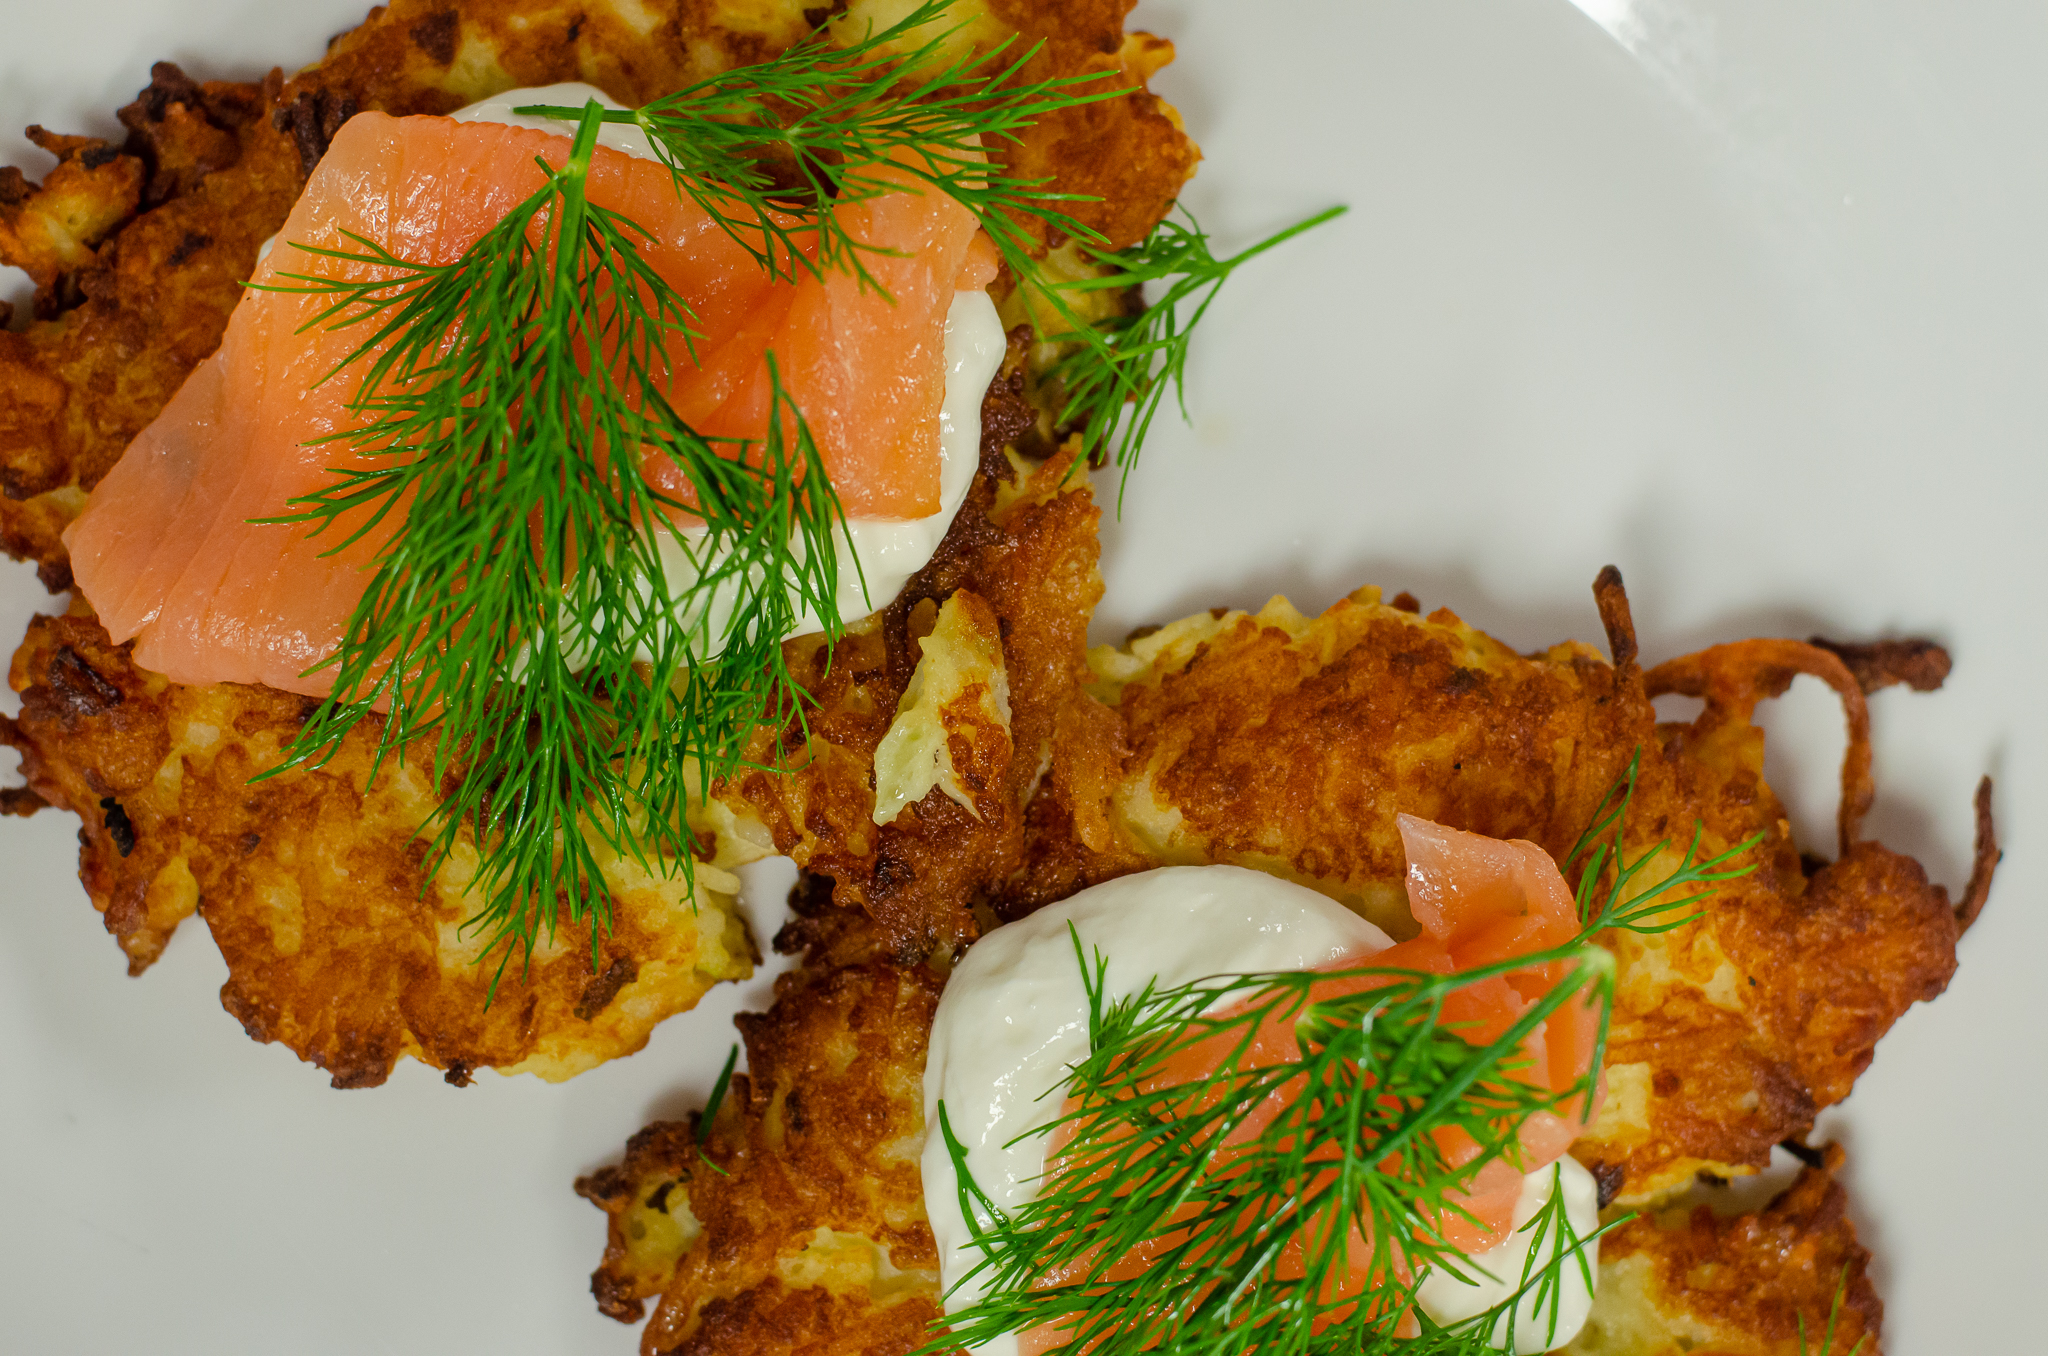 Potato Latke from Vine + Ash in Tecumseh, Ontario.